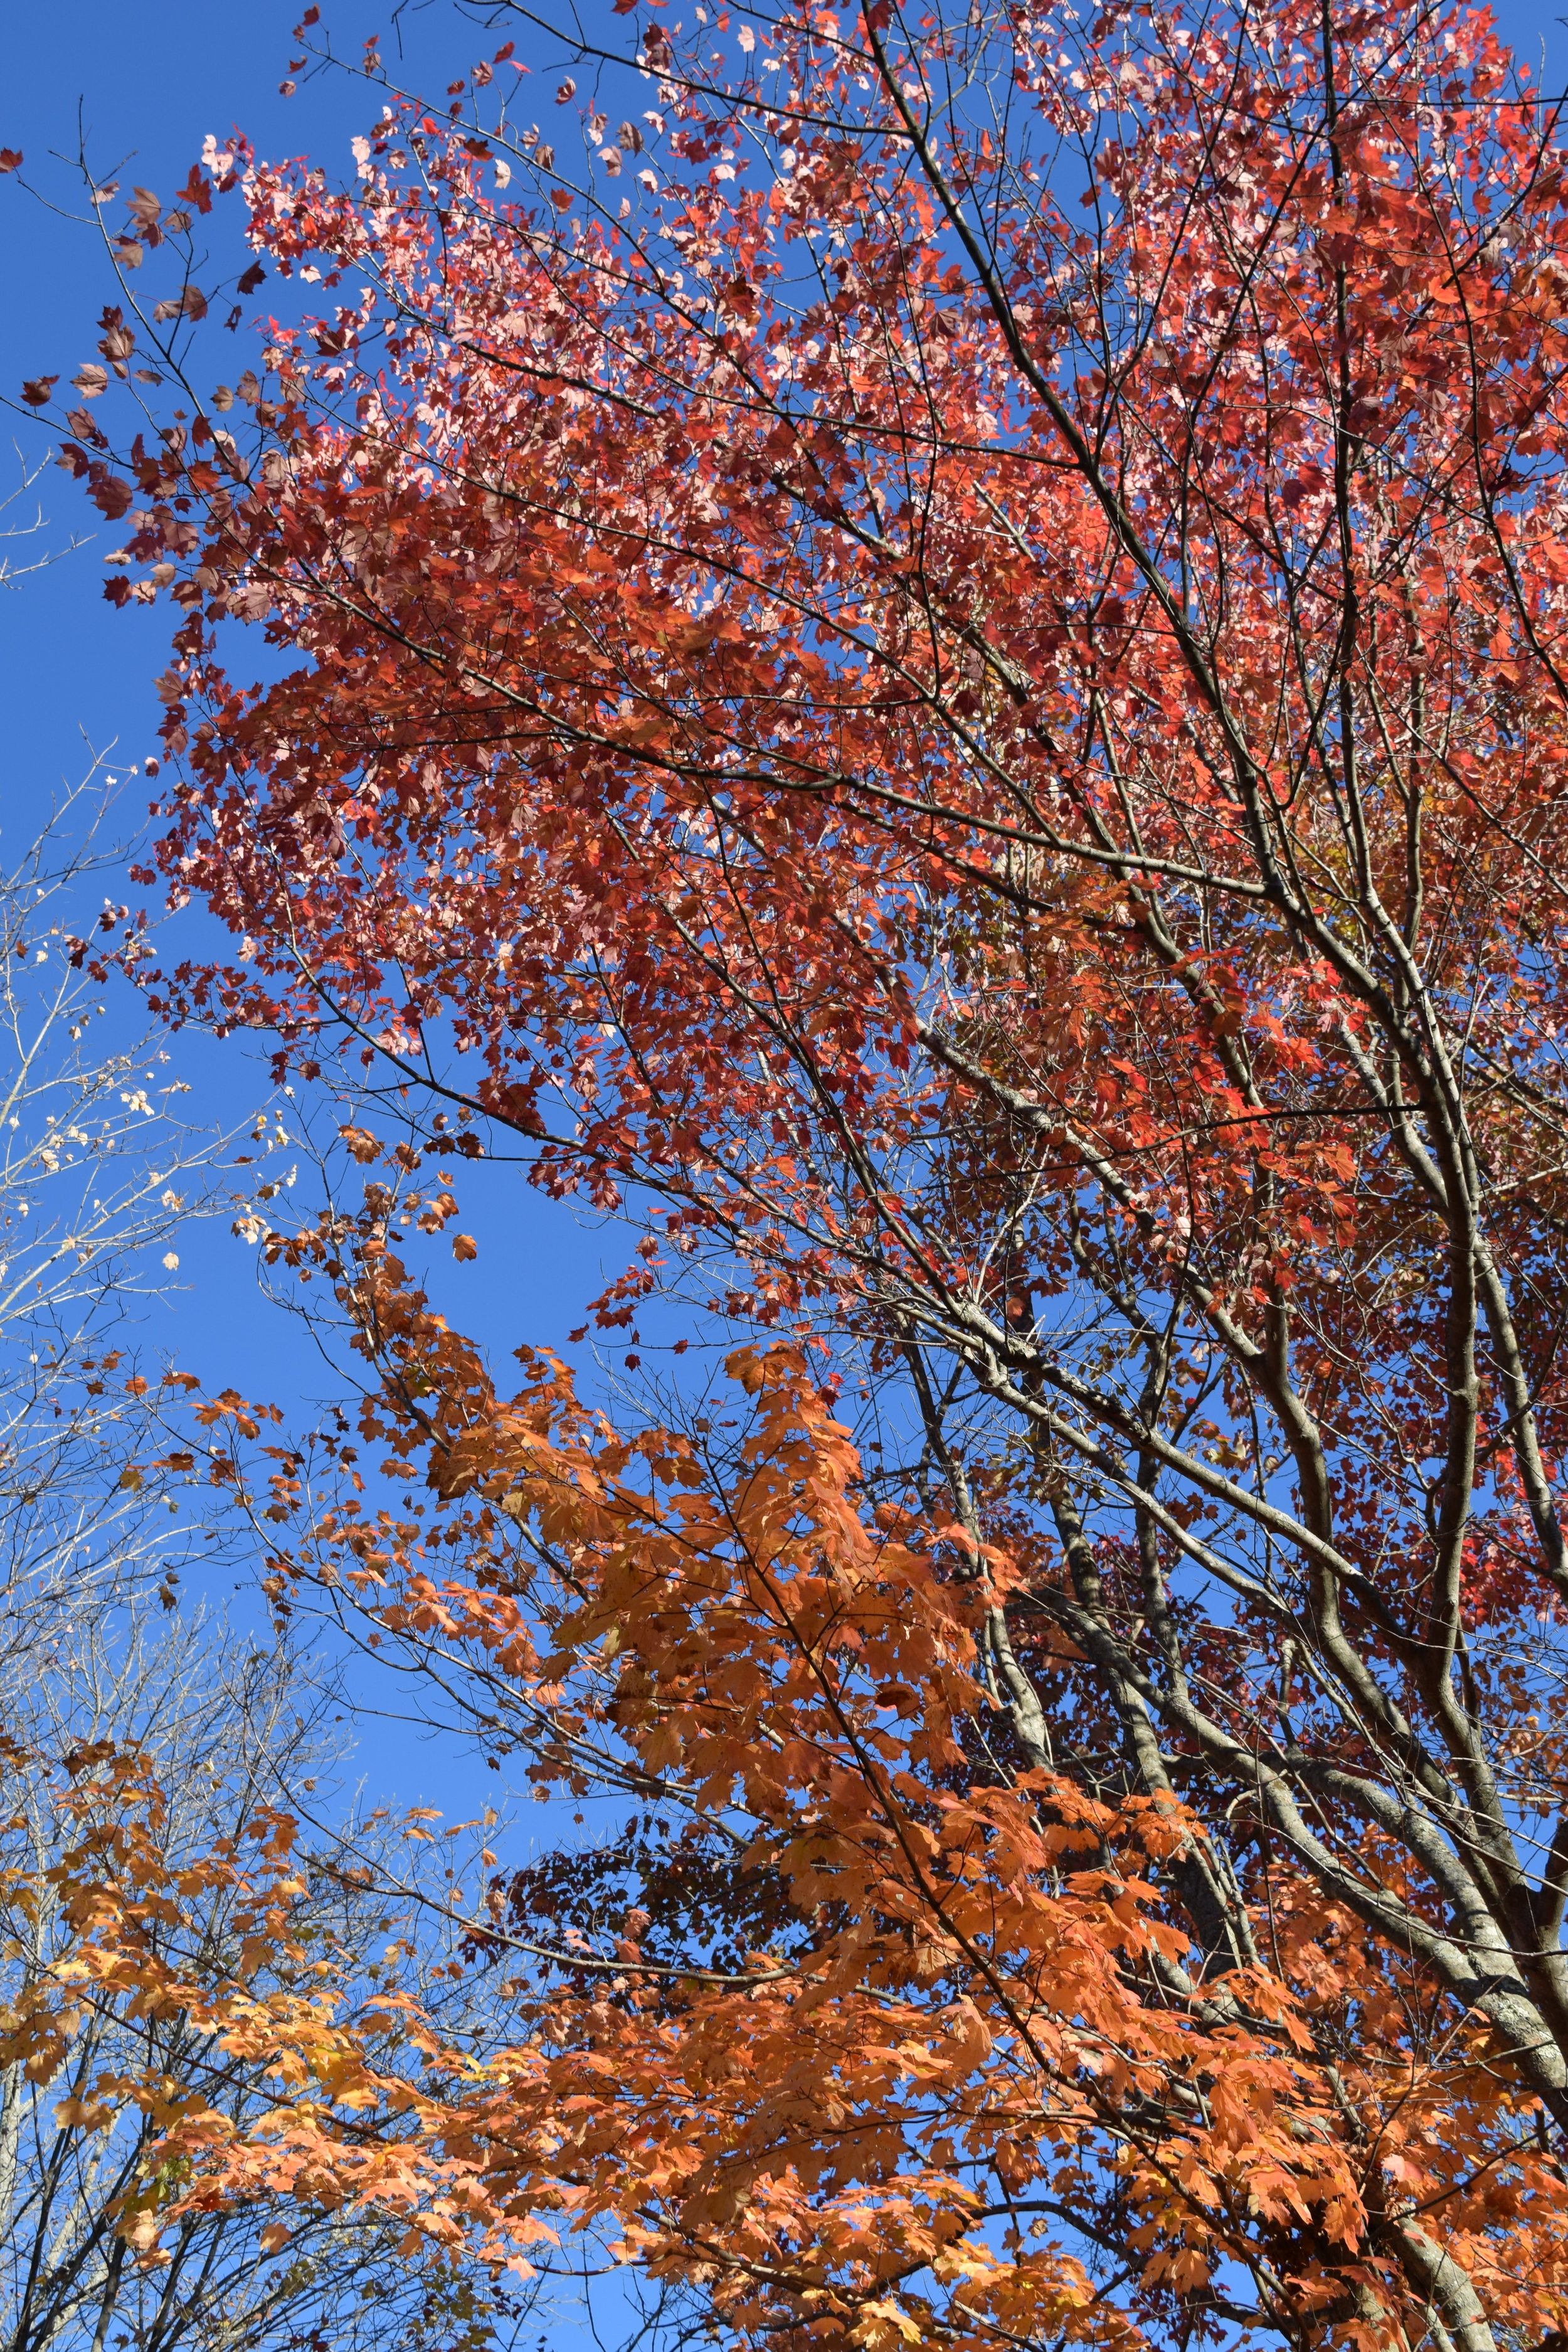 This fall has been one of the most gorgeous in the past few years.